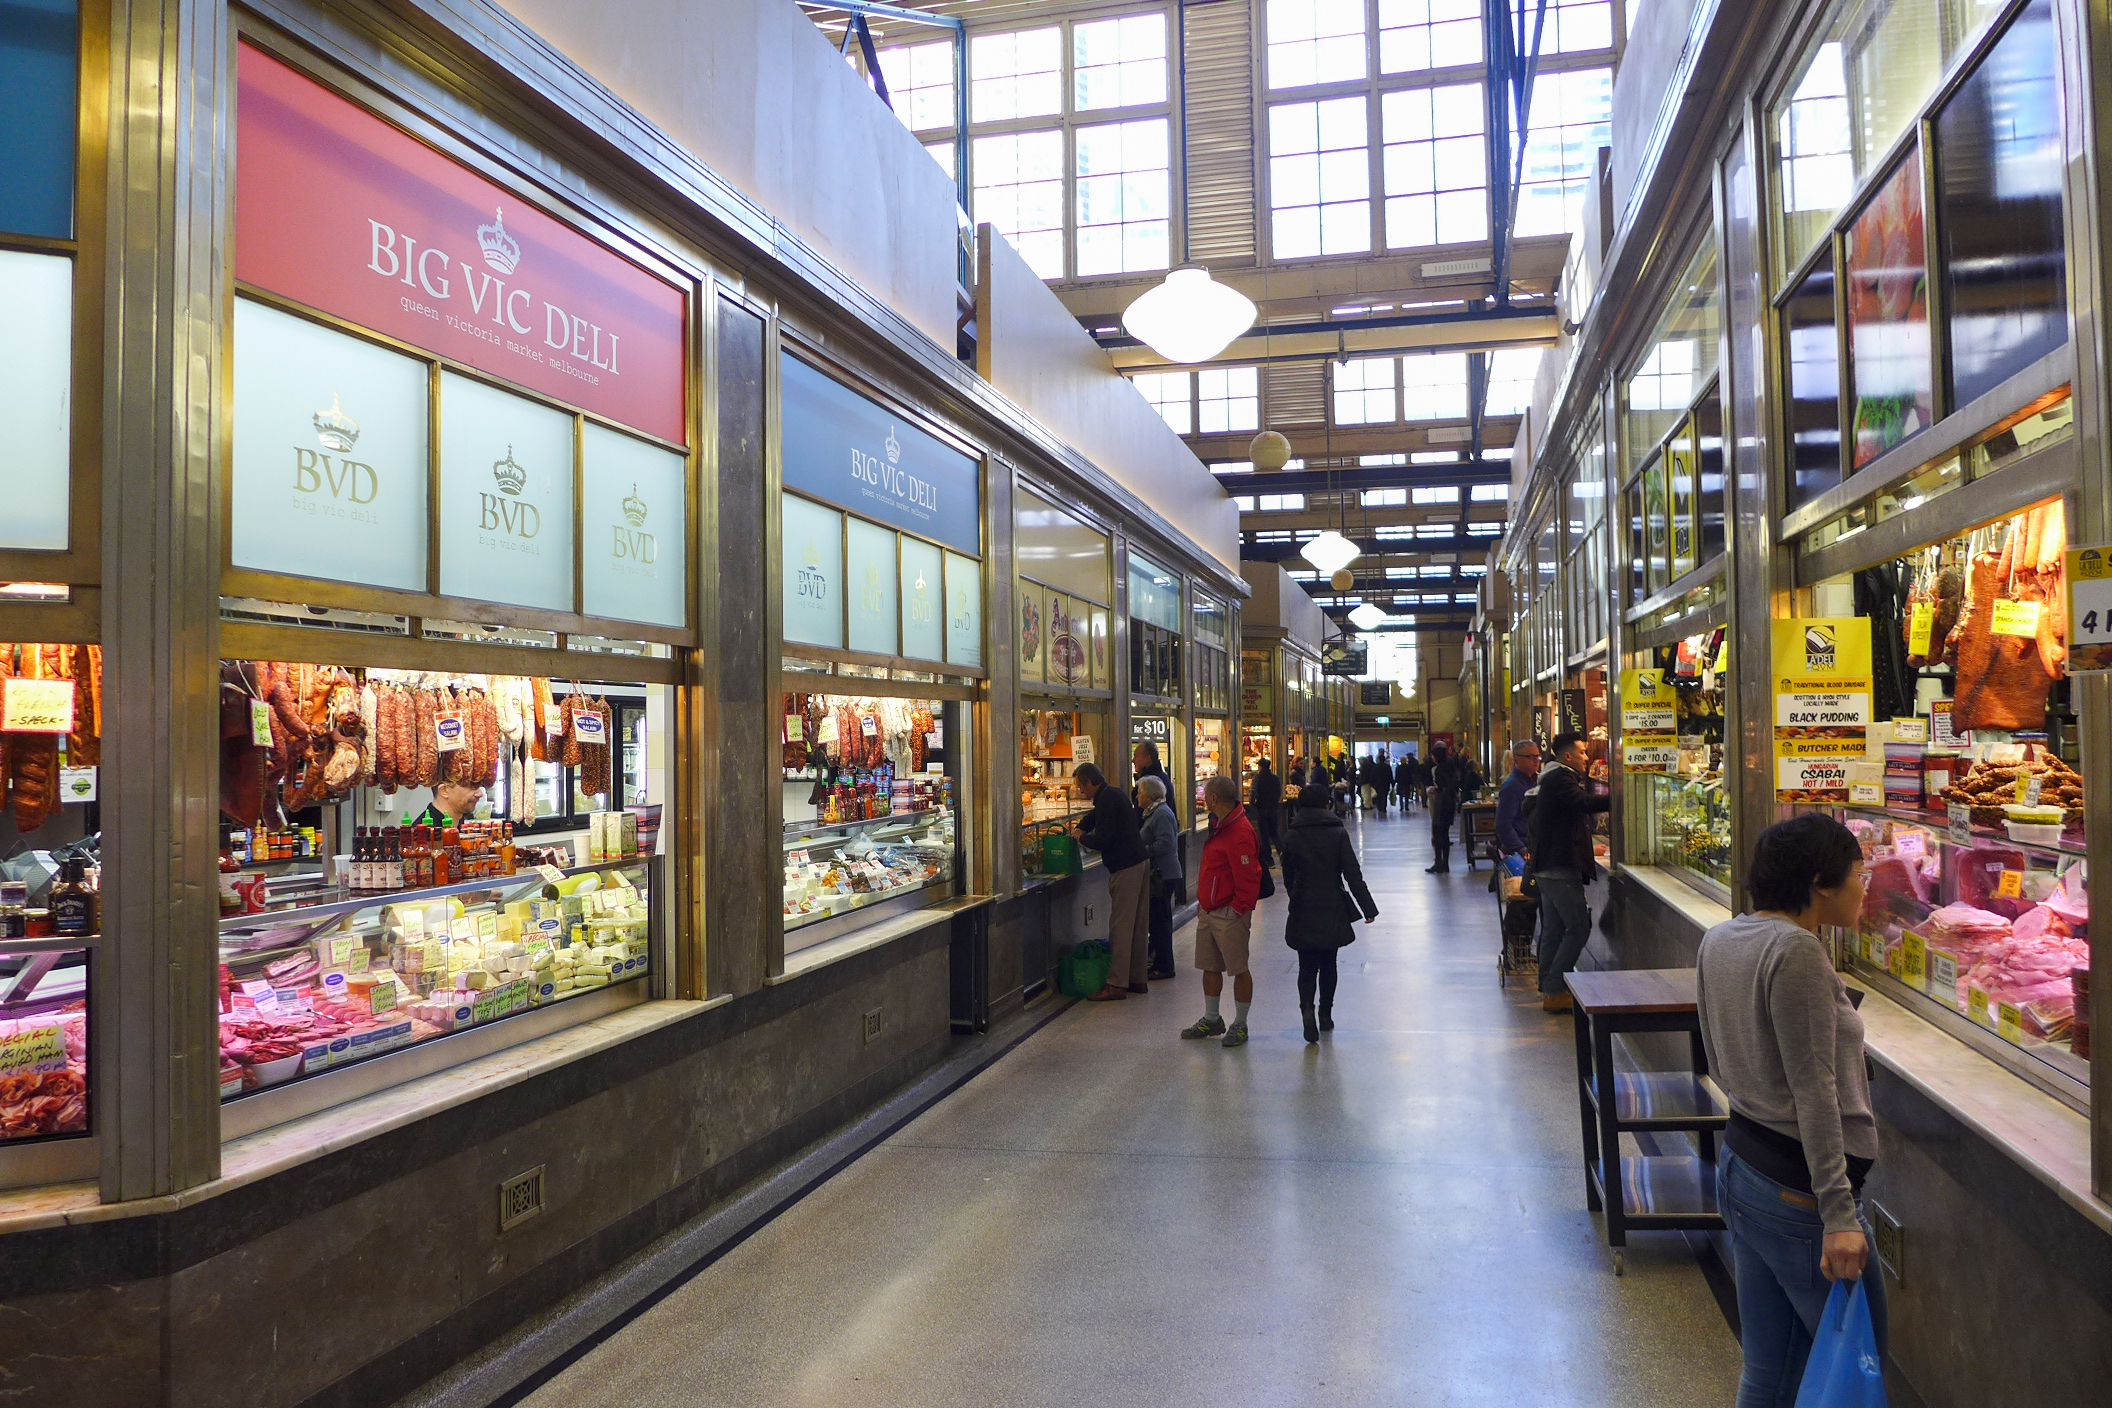 Queen_Victoria_Market_Daily_Product_Hall_201708.jpg